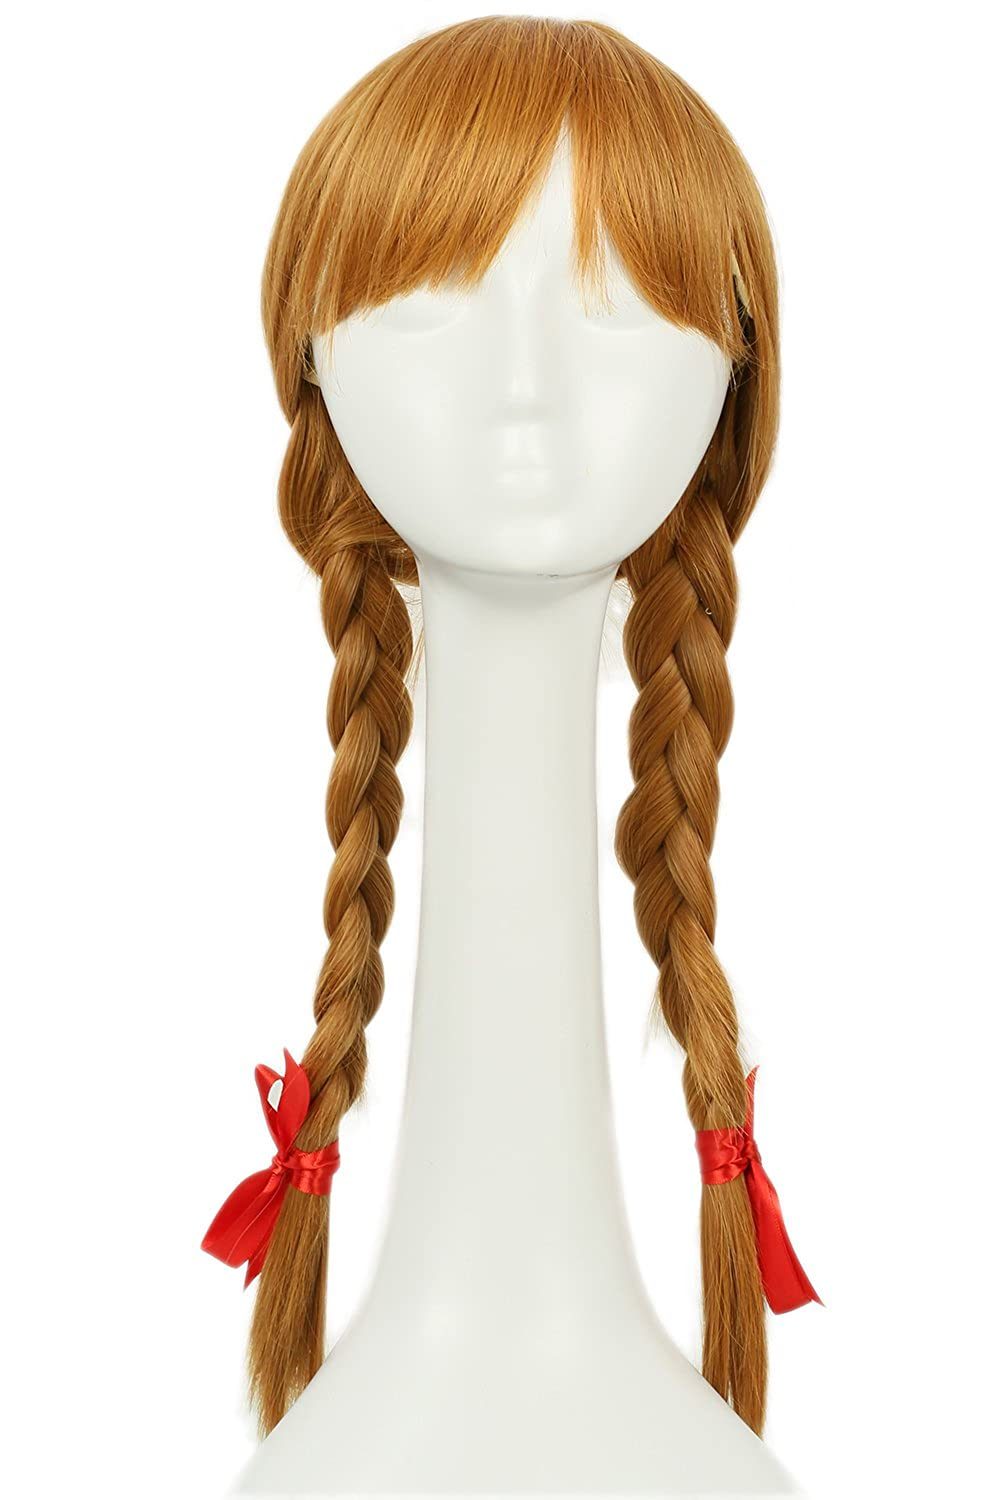 Annabelle Wig Conjuring Cosplay Long Light Brown Double Tails Hair Accessories